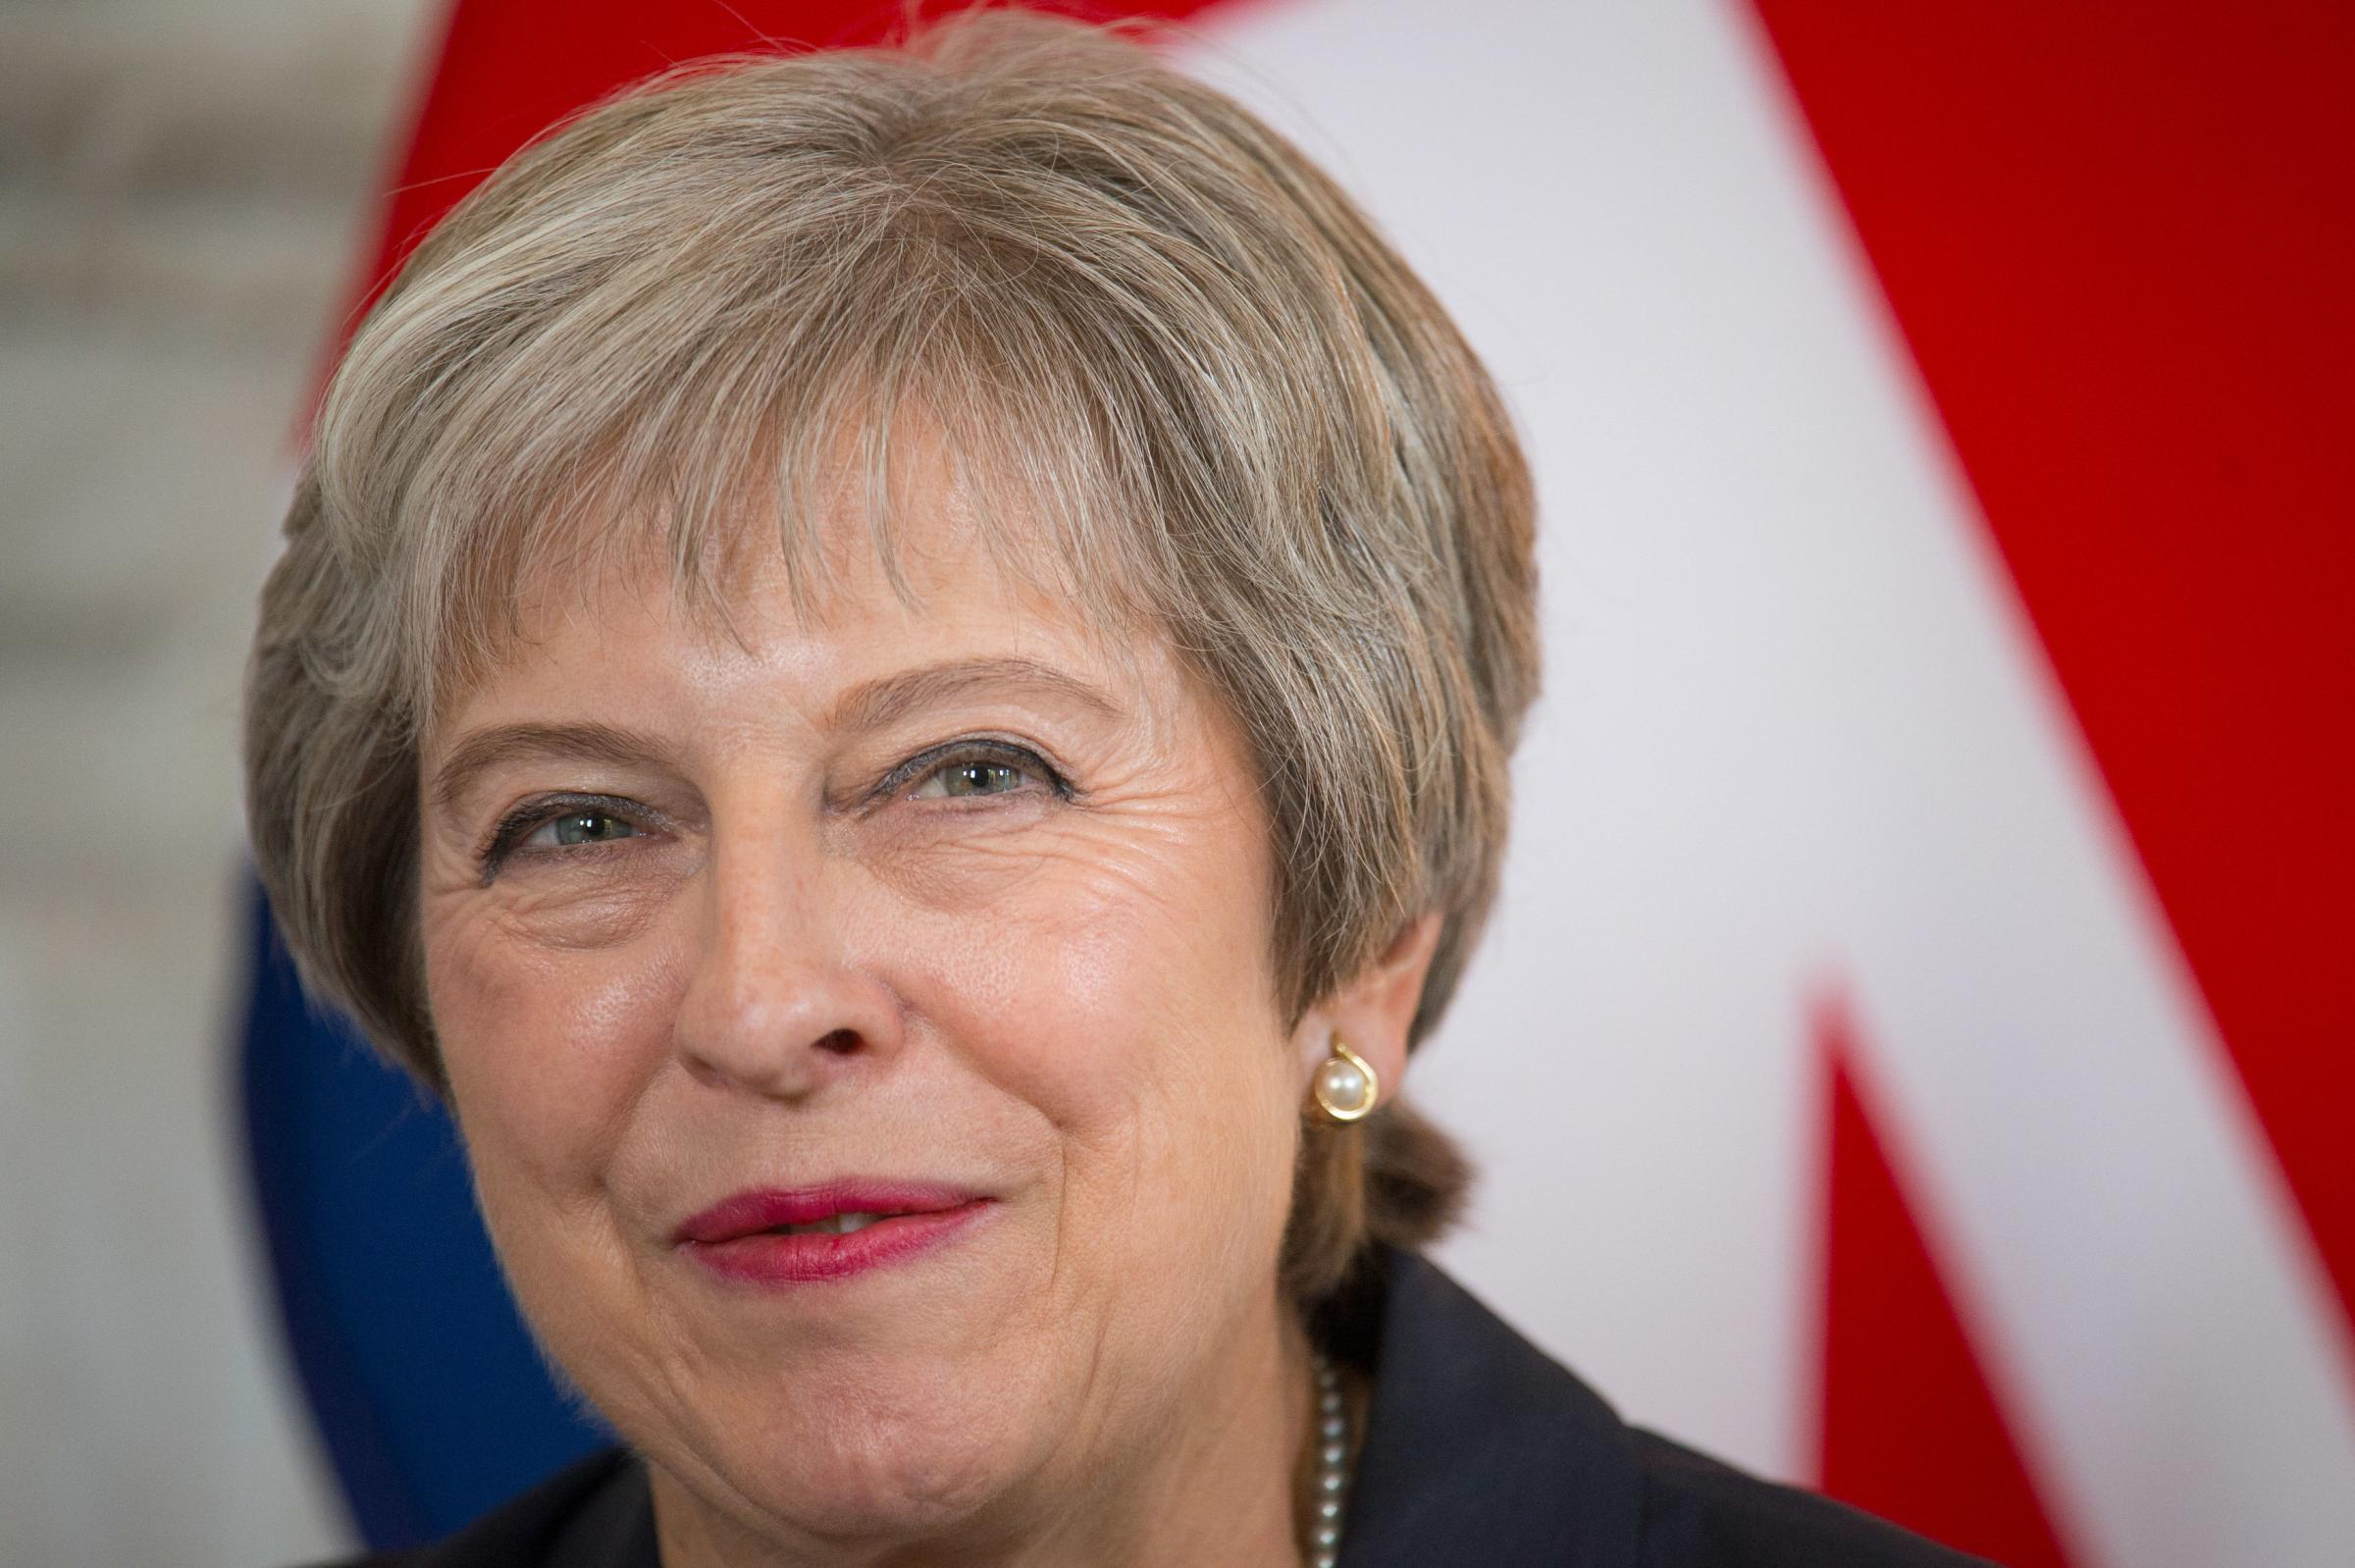 Prime Minister Theresa May. Picture: Dominic Lipinski/PA Wire